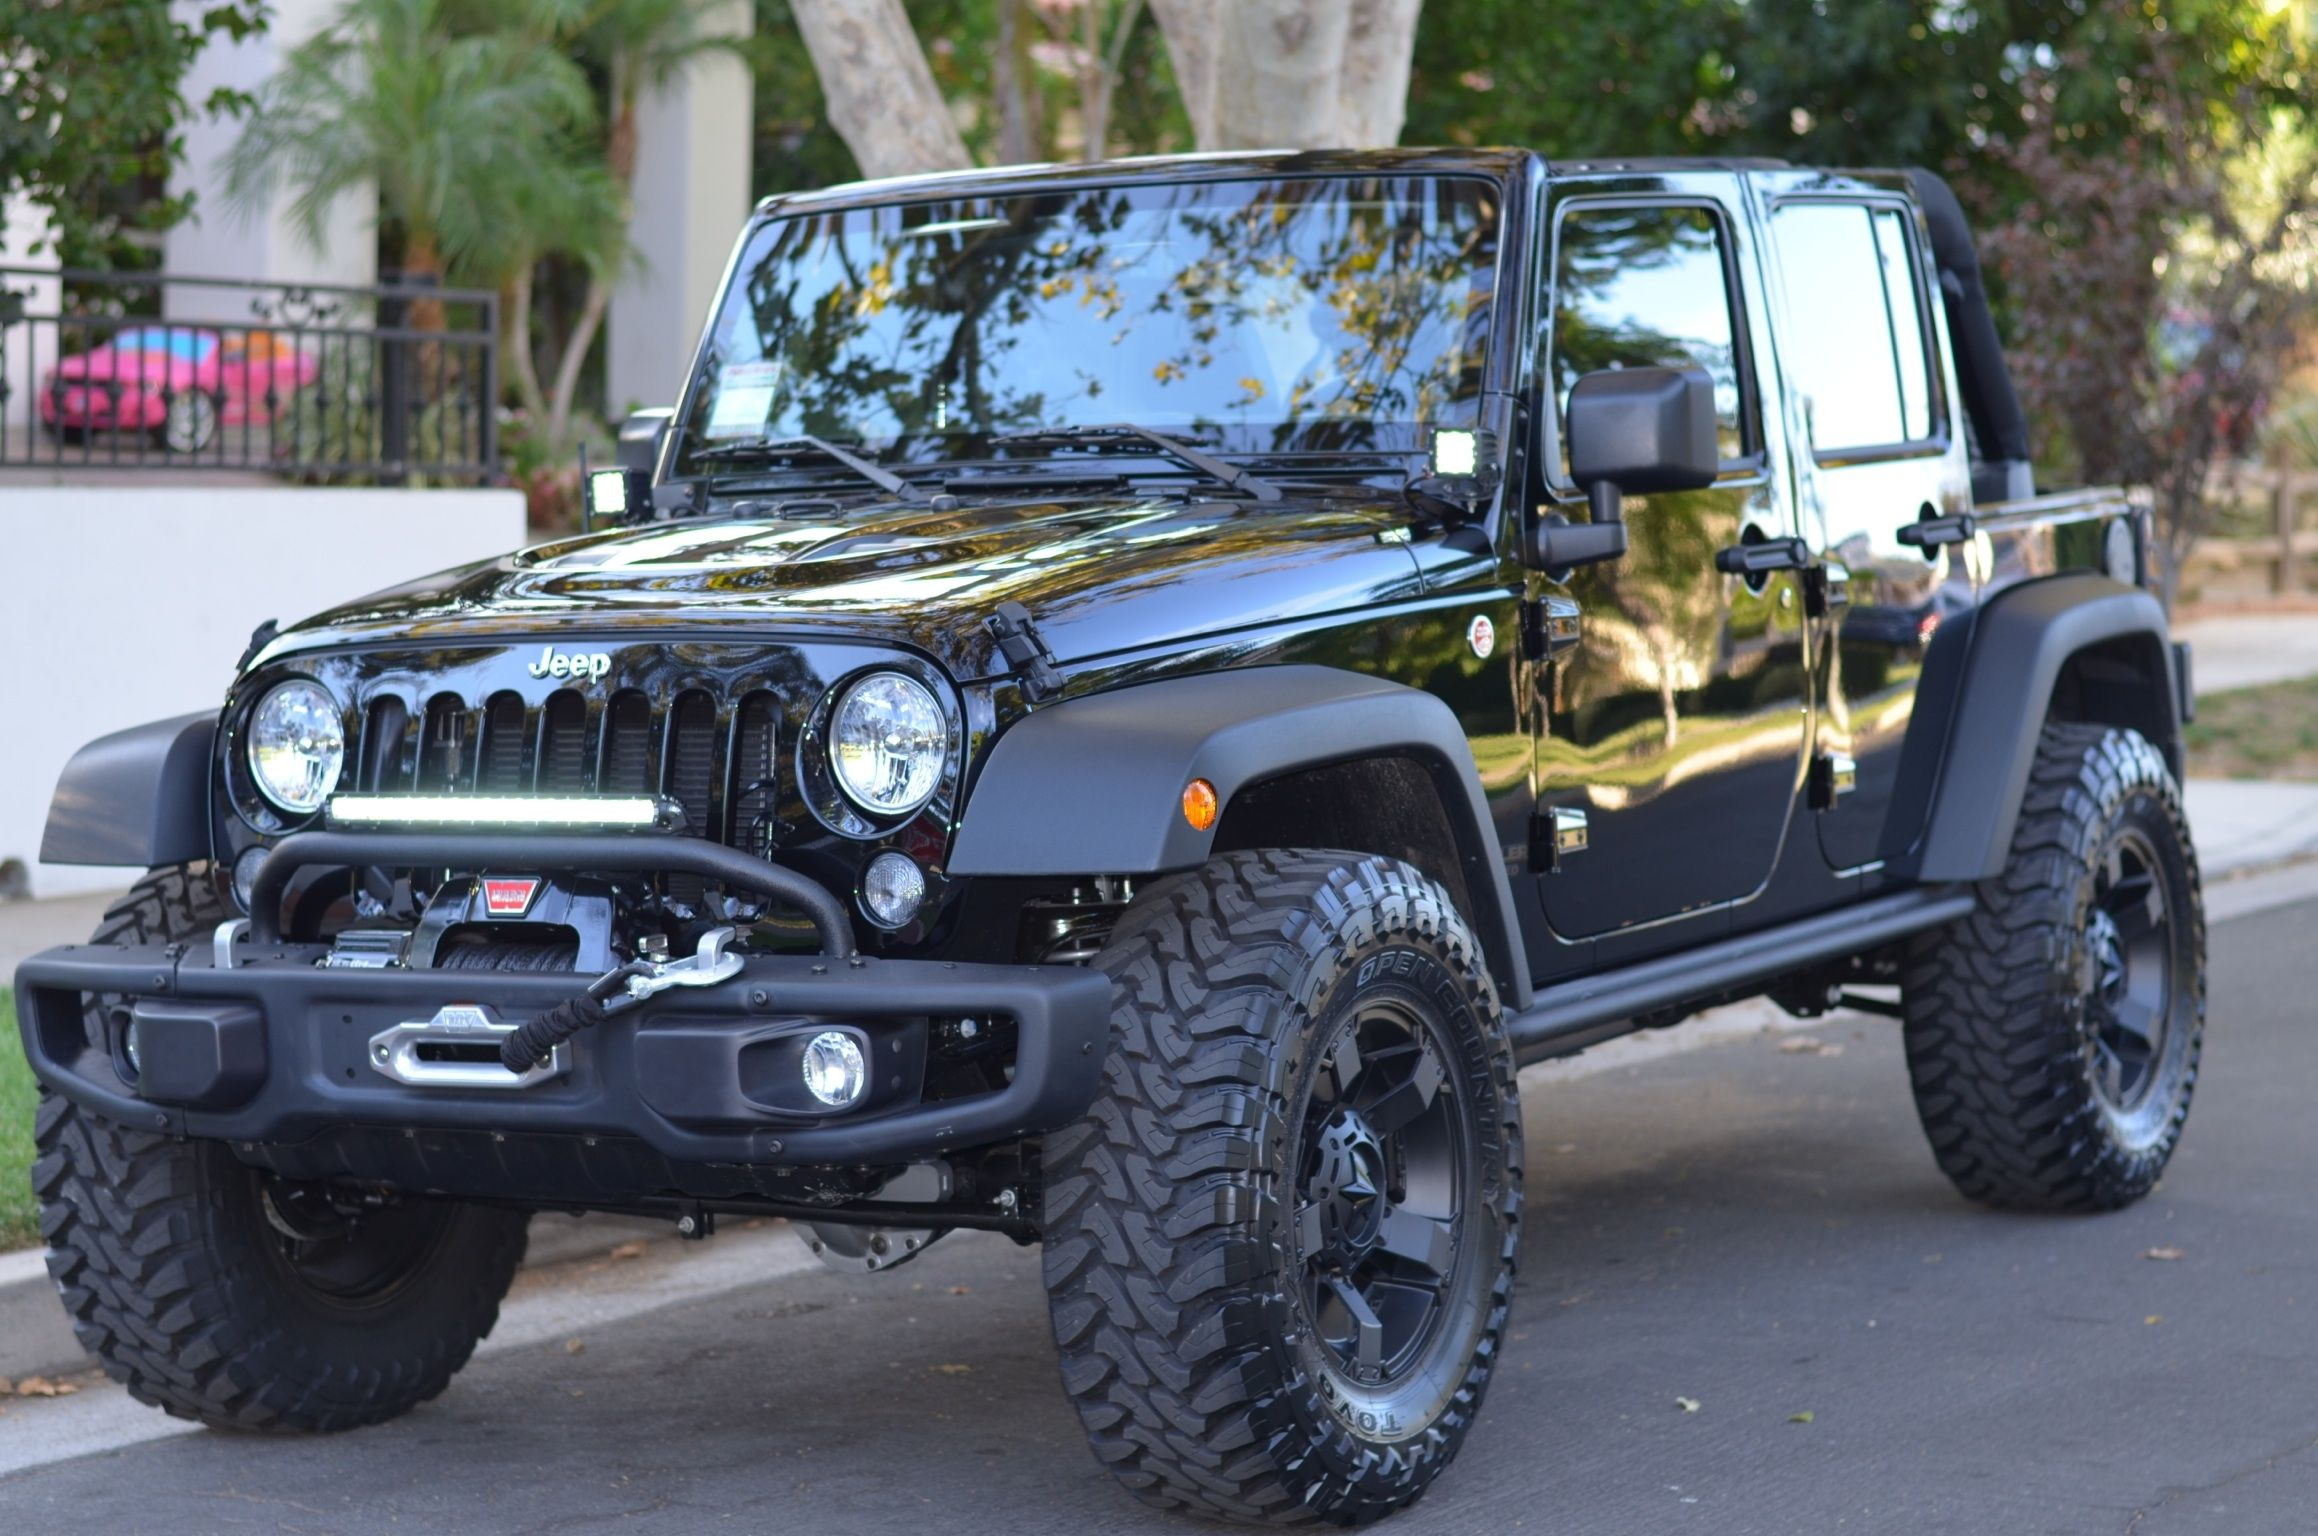 Jeep Jk With Rockstar Wheels And Toyo Tires New Front Bumper With